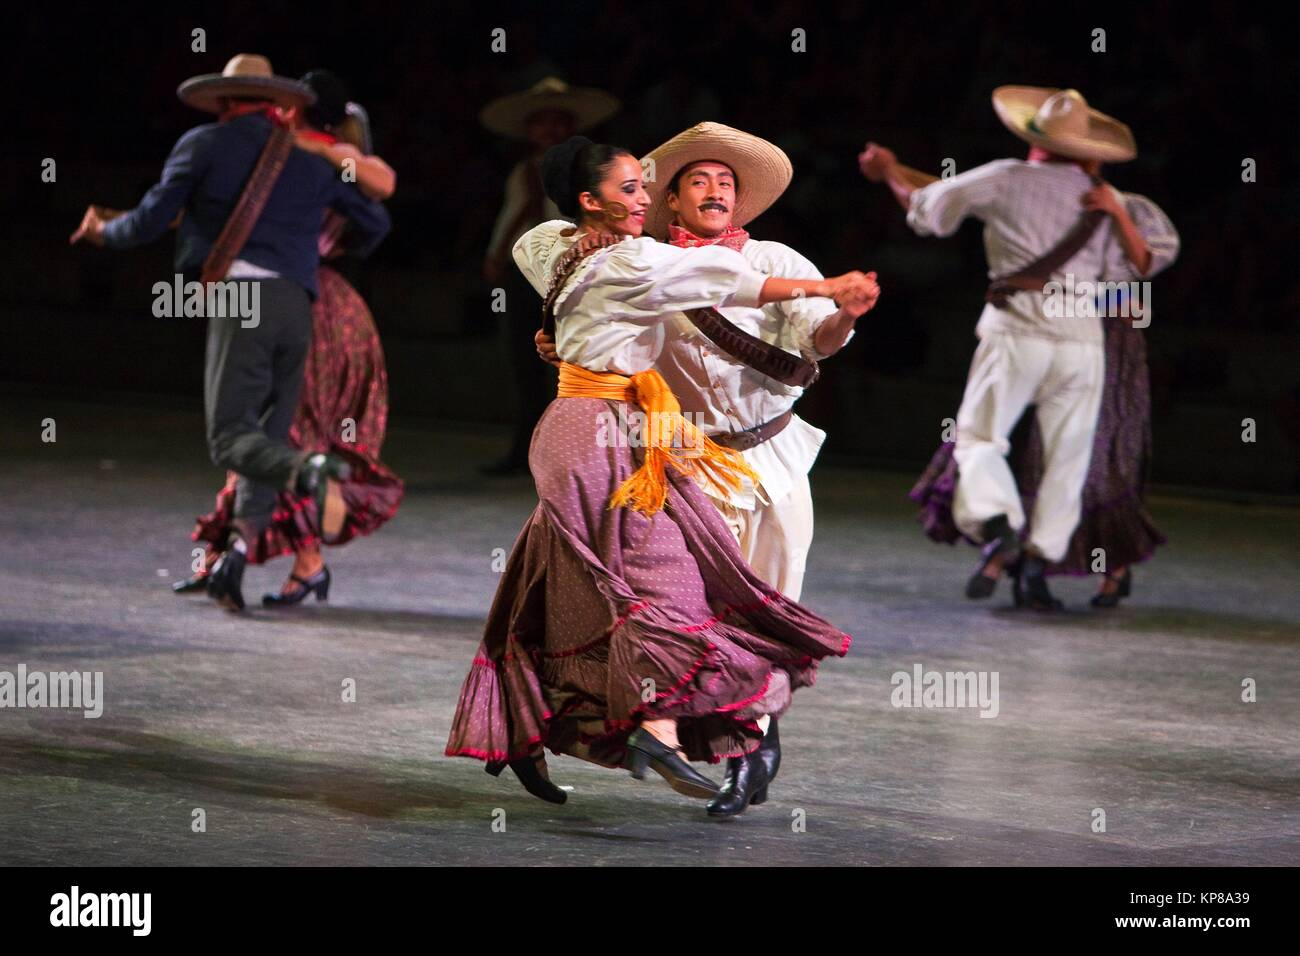 Dancers during a performance of ´Mexico Espectacular´with traditional dress at the stage, Xcaret, Playa - Stock Image